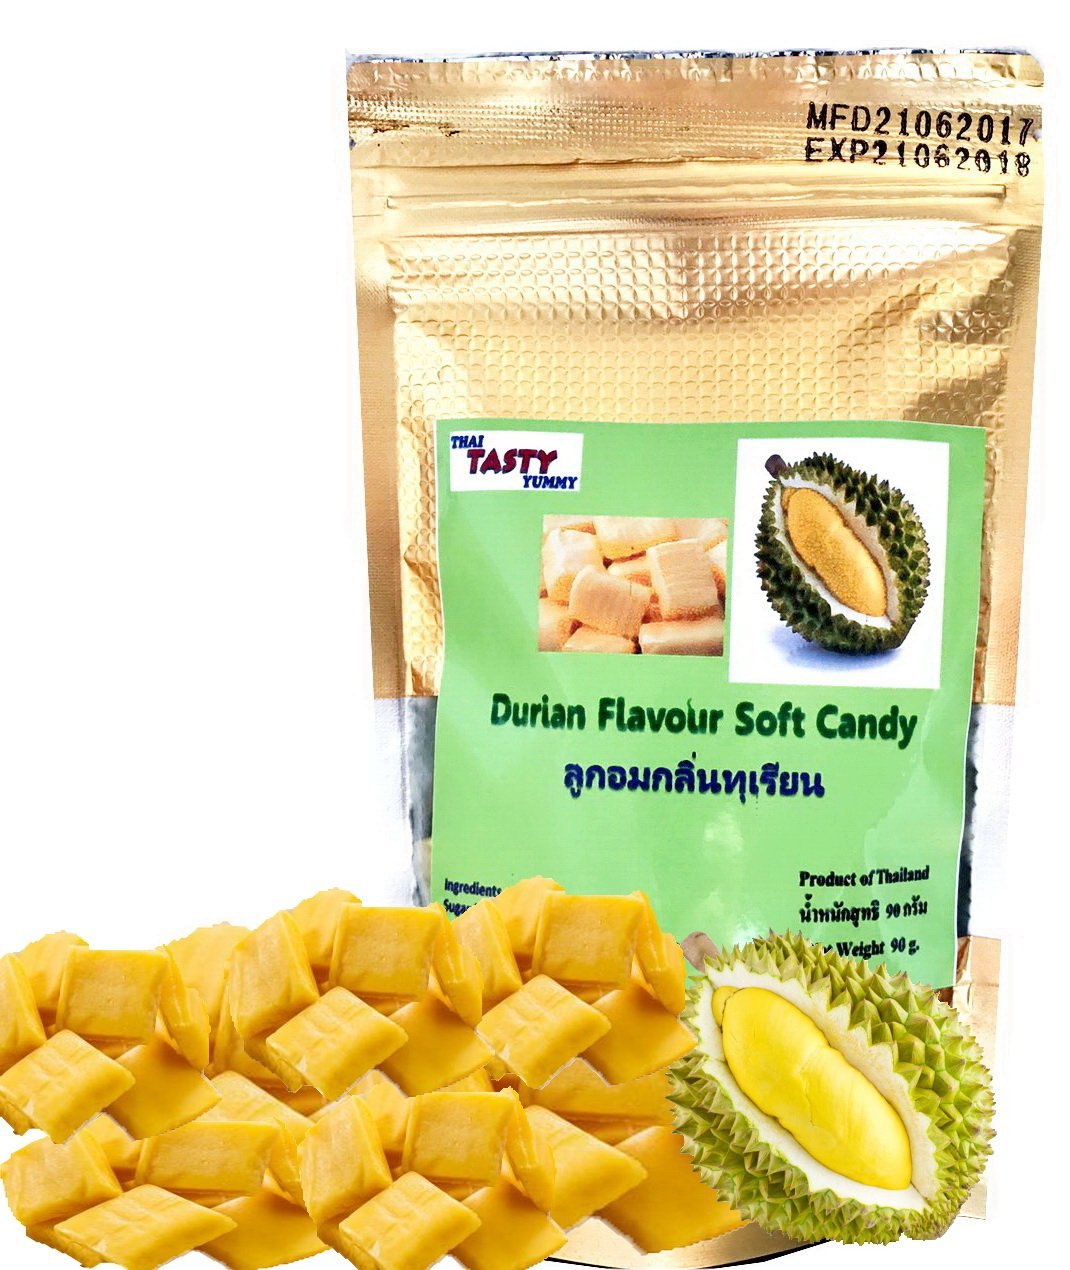 Durian Flavoured King of Fruit Soft Candy 90 g. or 3.15 Oz (Pack of 2) Thai Tasty Yummy.